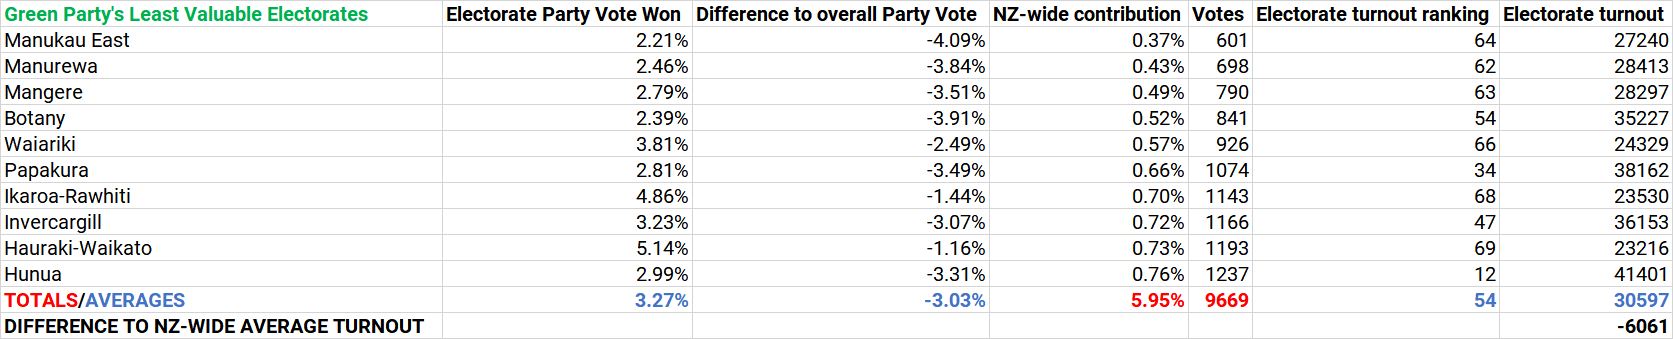 Green Party Least Valuable.png